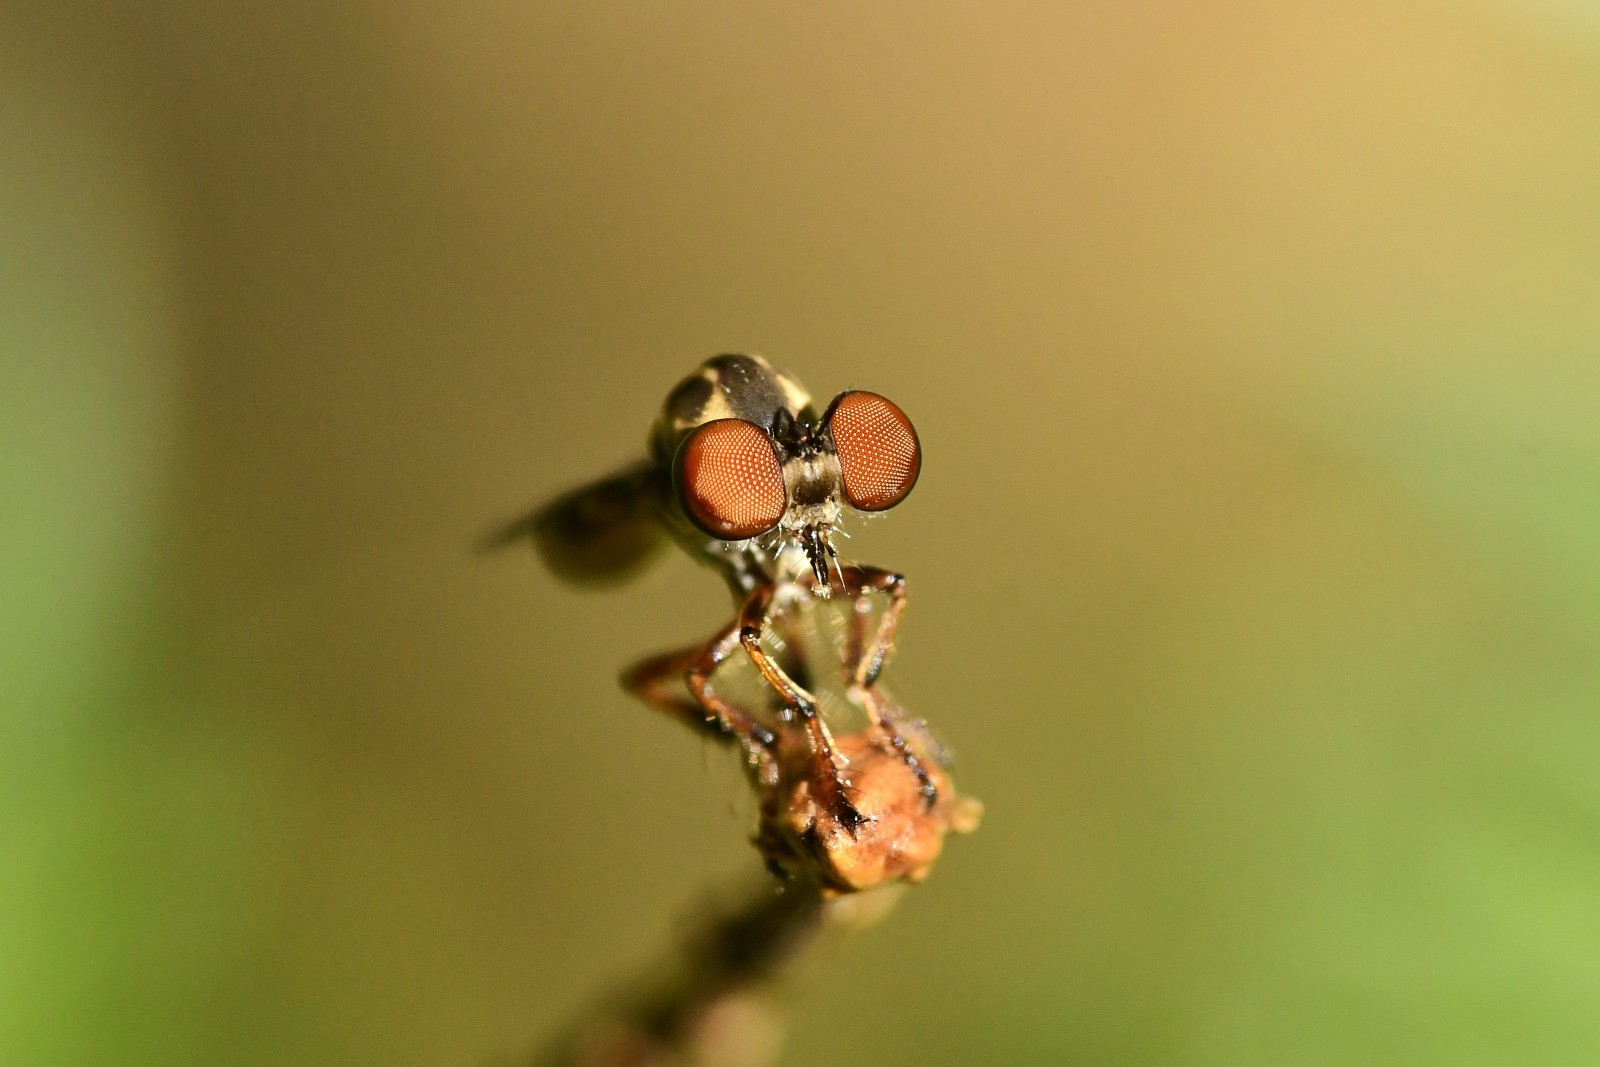 A gnat ogre fly (Genus: Holcocephala) poses on a flower stem.